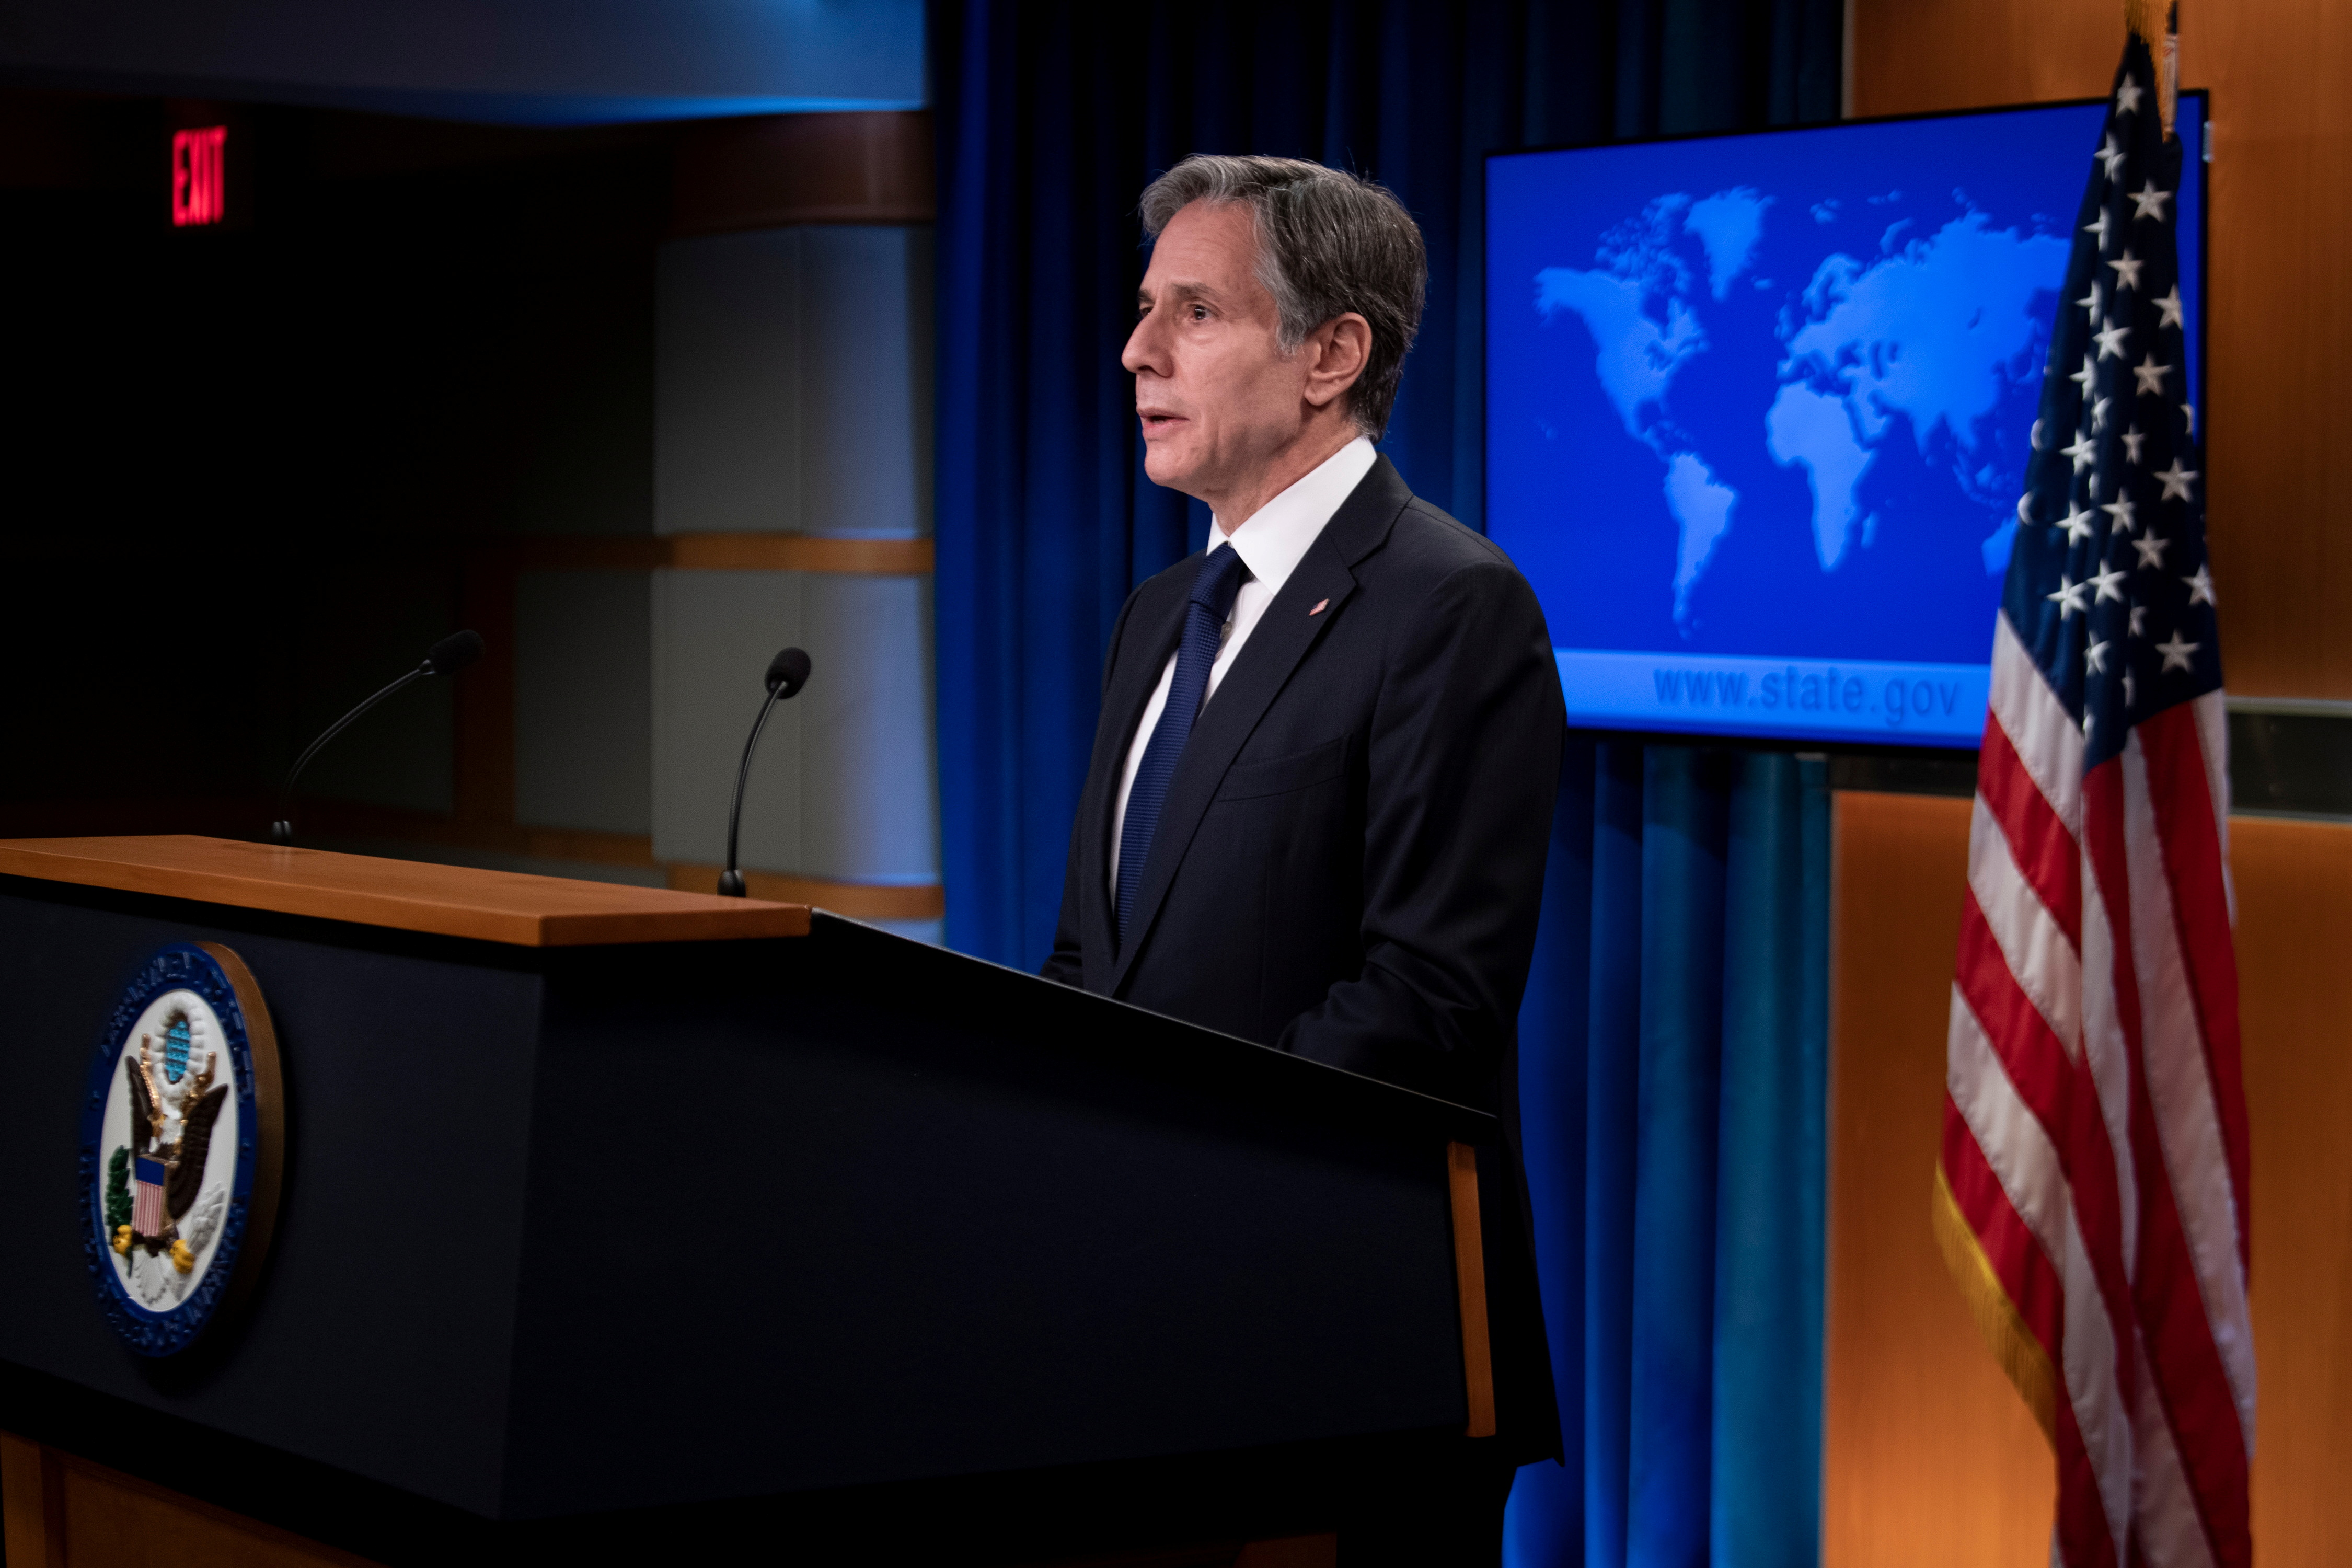 U.S. Secretary of State Antony Blinken speaks about refugee programs for Afghans who aided the U.S. during a briefing at the State Department in Washington, DC, U.S. August 2, 2021. Brendan Smialowski/Pool via REUTERS/File Photo